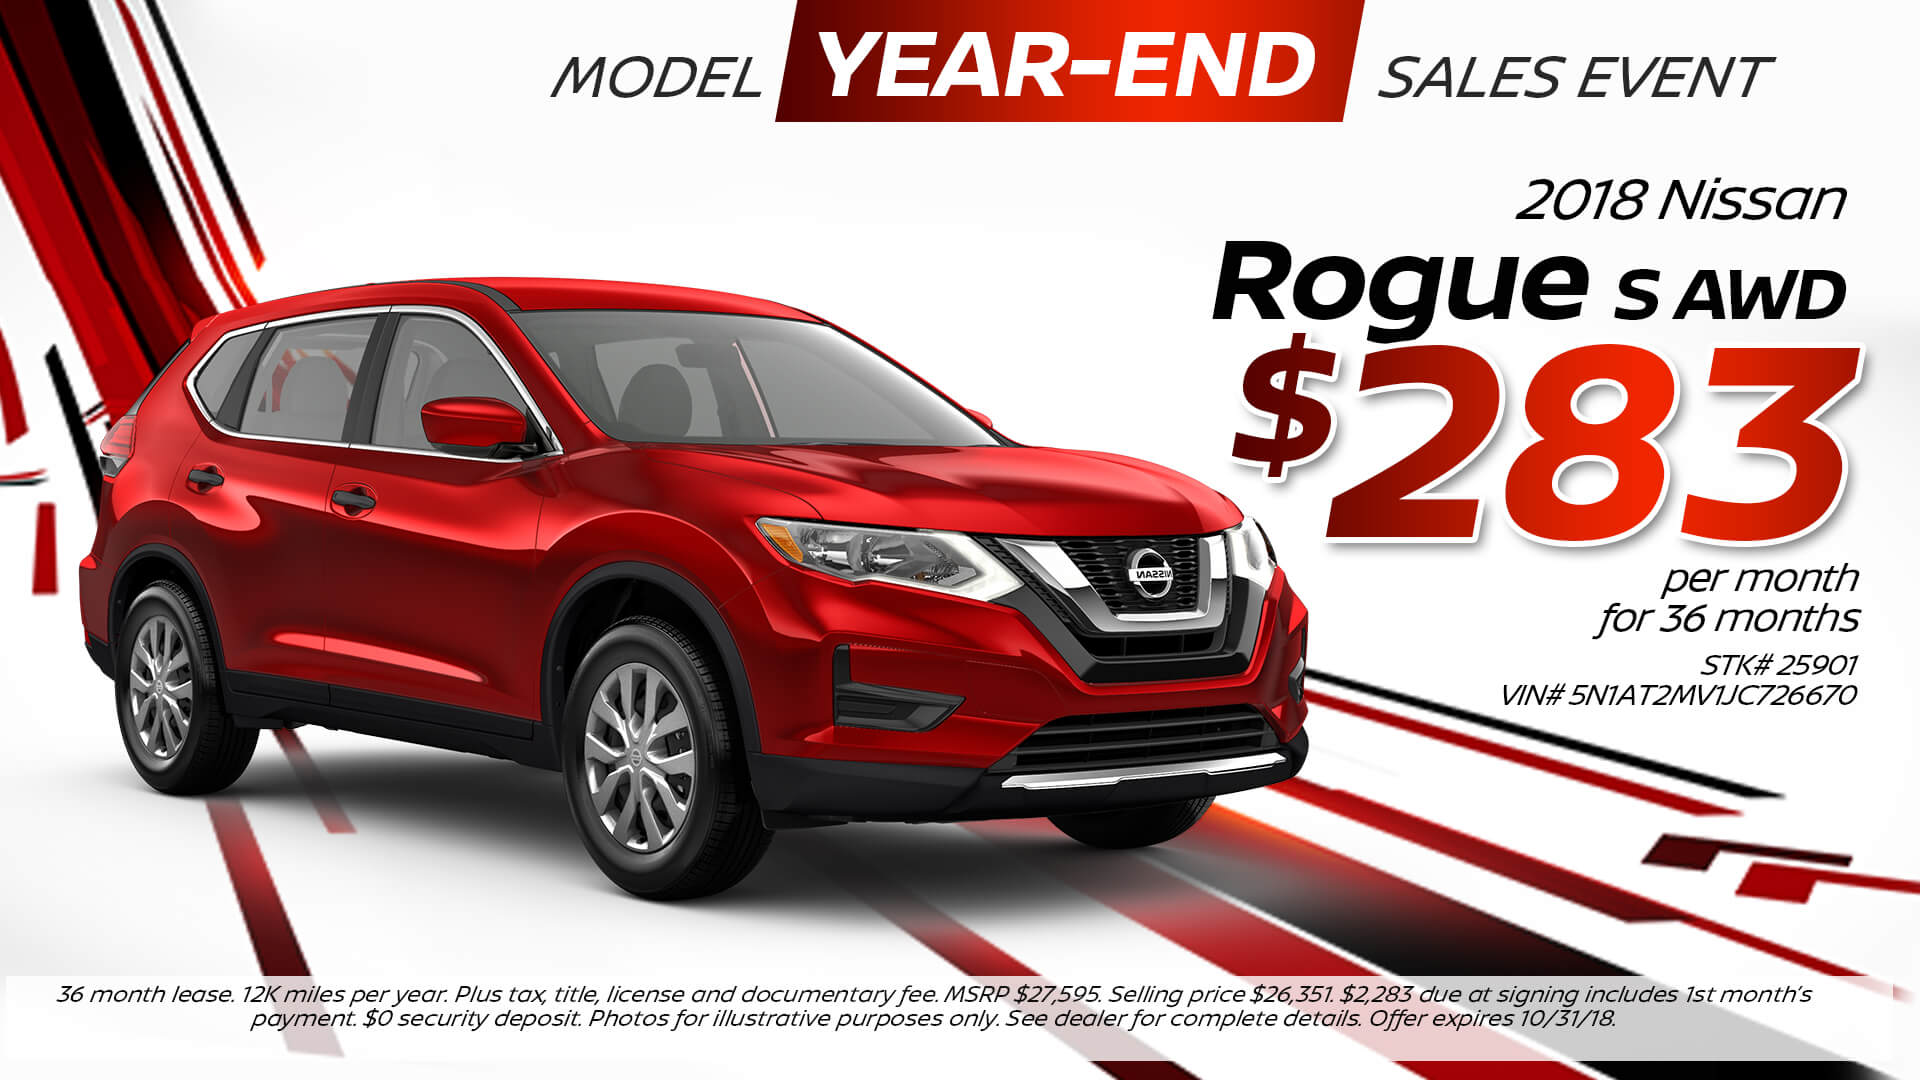 2018 Nissan Rogue Special Offer